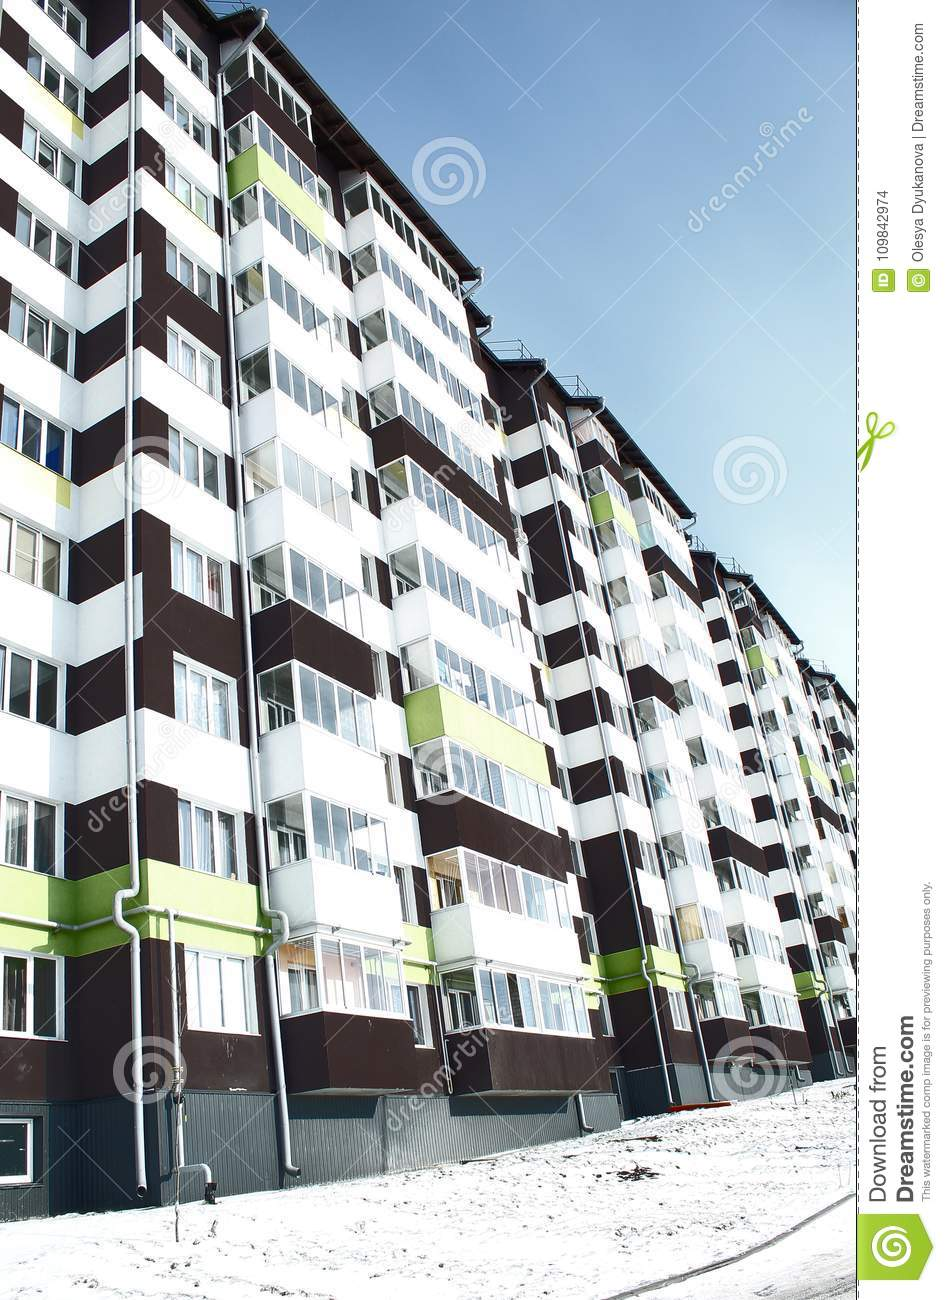 Modern Multi-storey Building With Balconies Stock Photo ...